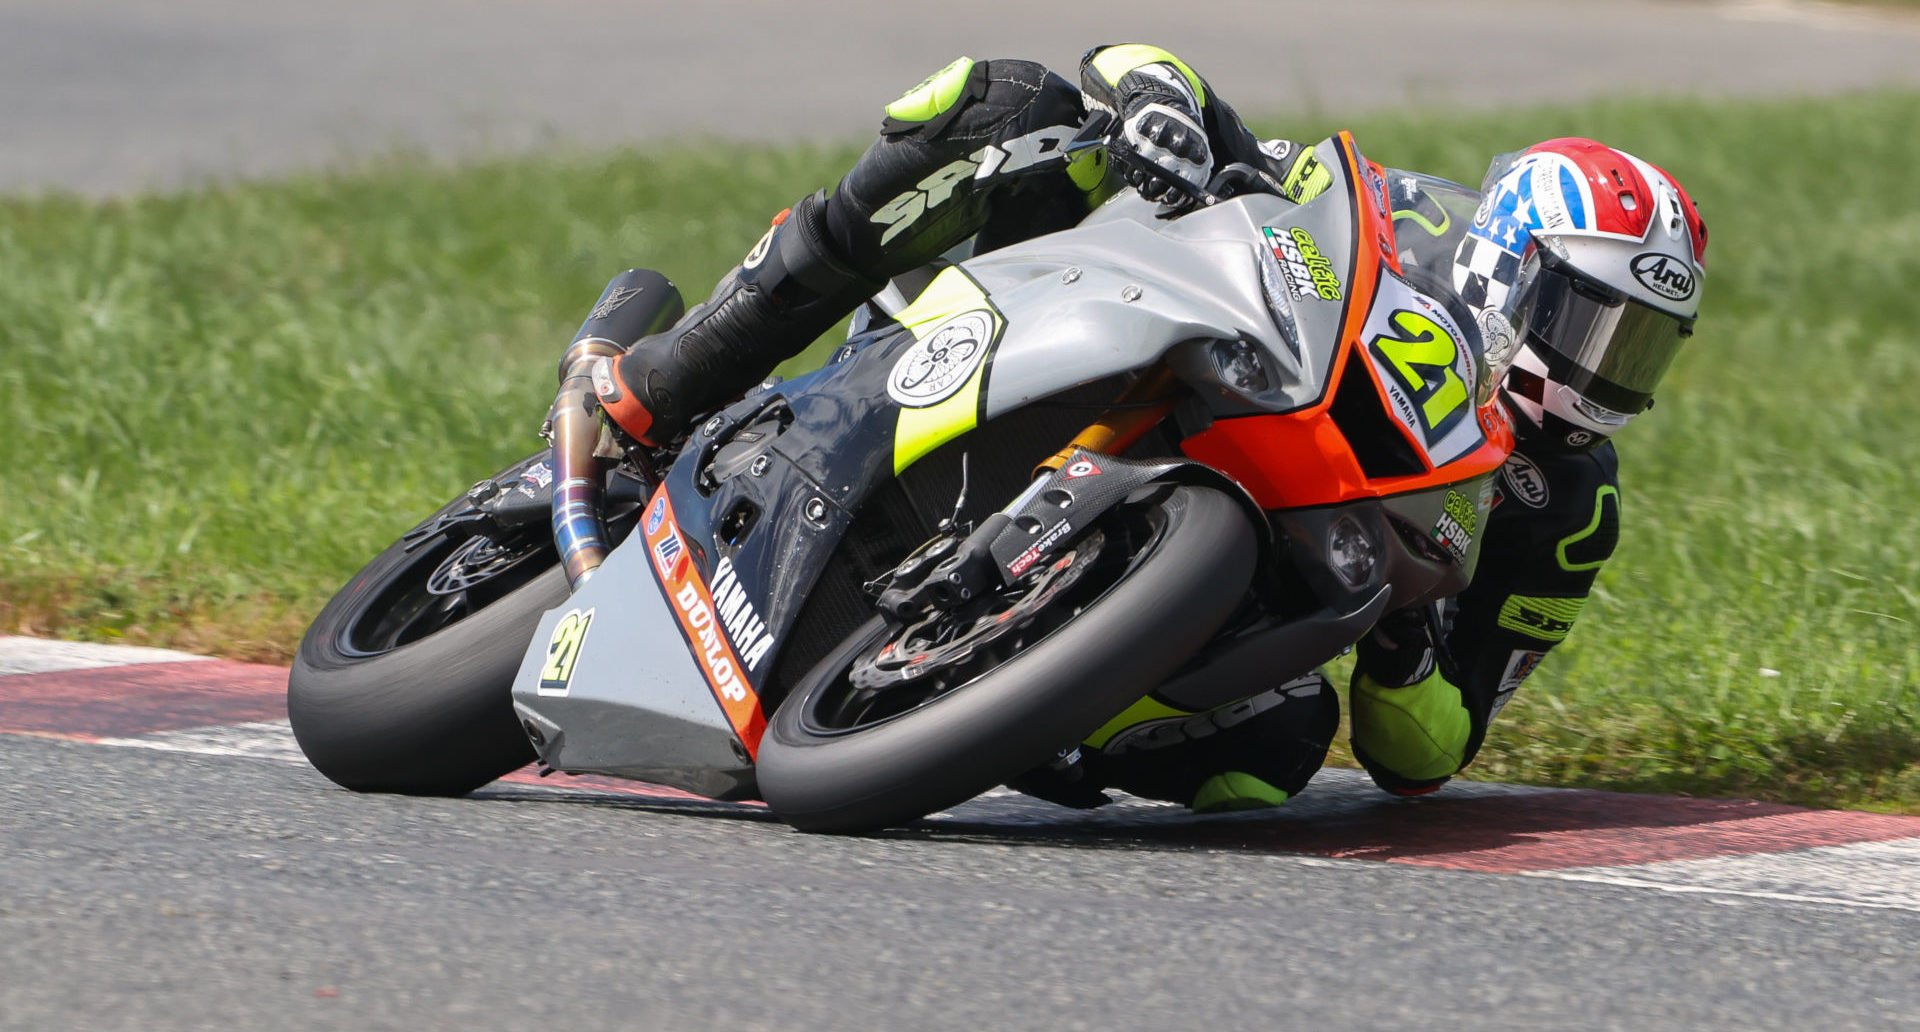 Brandon Paasch (21) as seen on his Celtic HSBK Racing Yamaha YZF-R6 at New Jersey Motorsports Park. Photo by Brian J. Nelson.